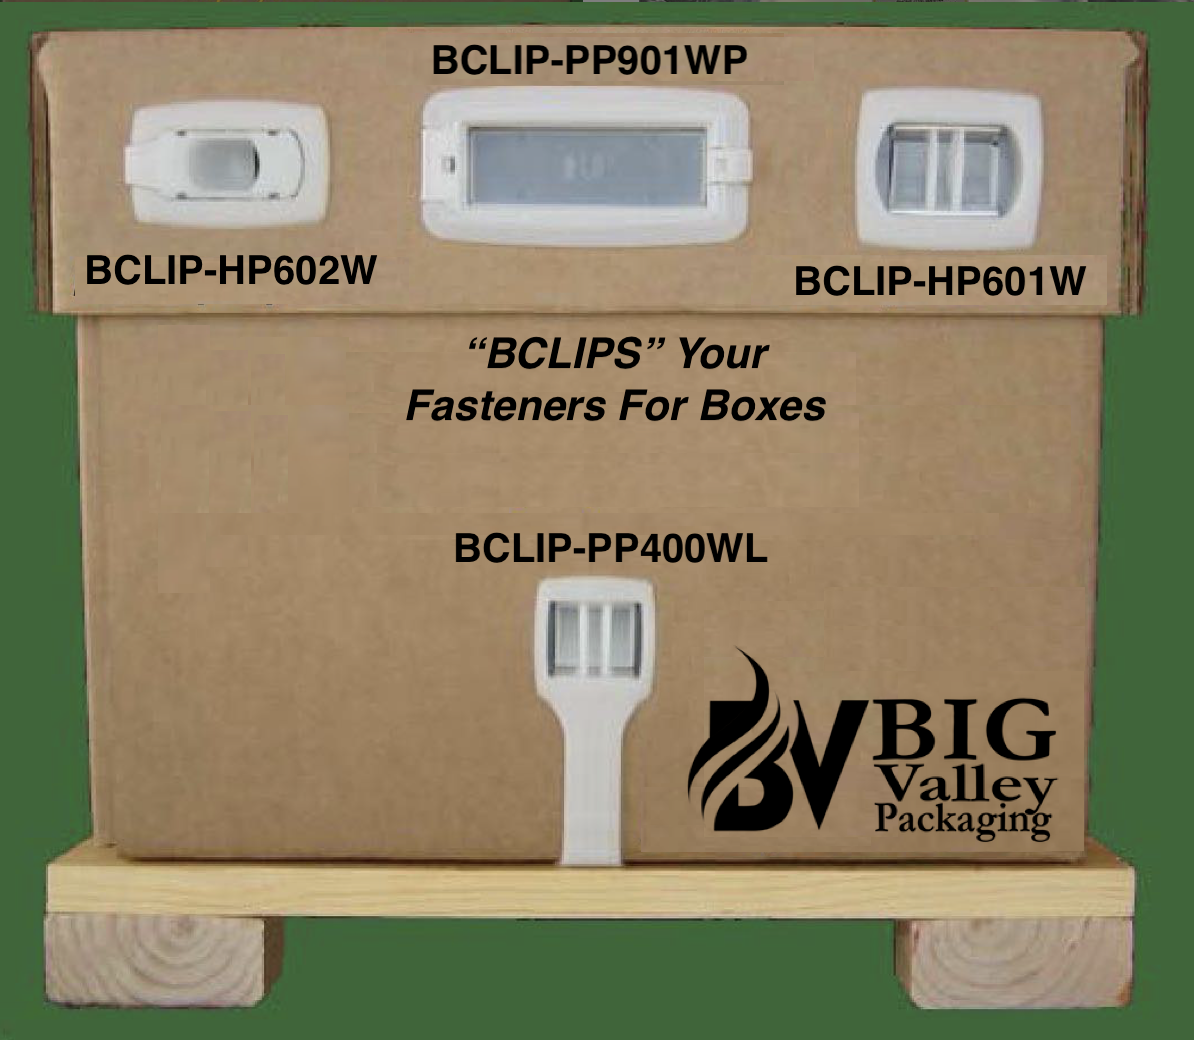 Bclips Plastic clip fasteners for corrugated boxes - Plastic connecting fasteners hinged clips for boxes